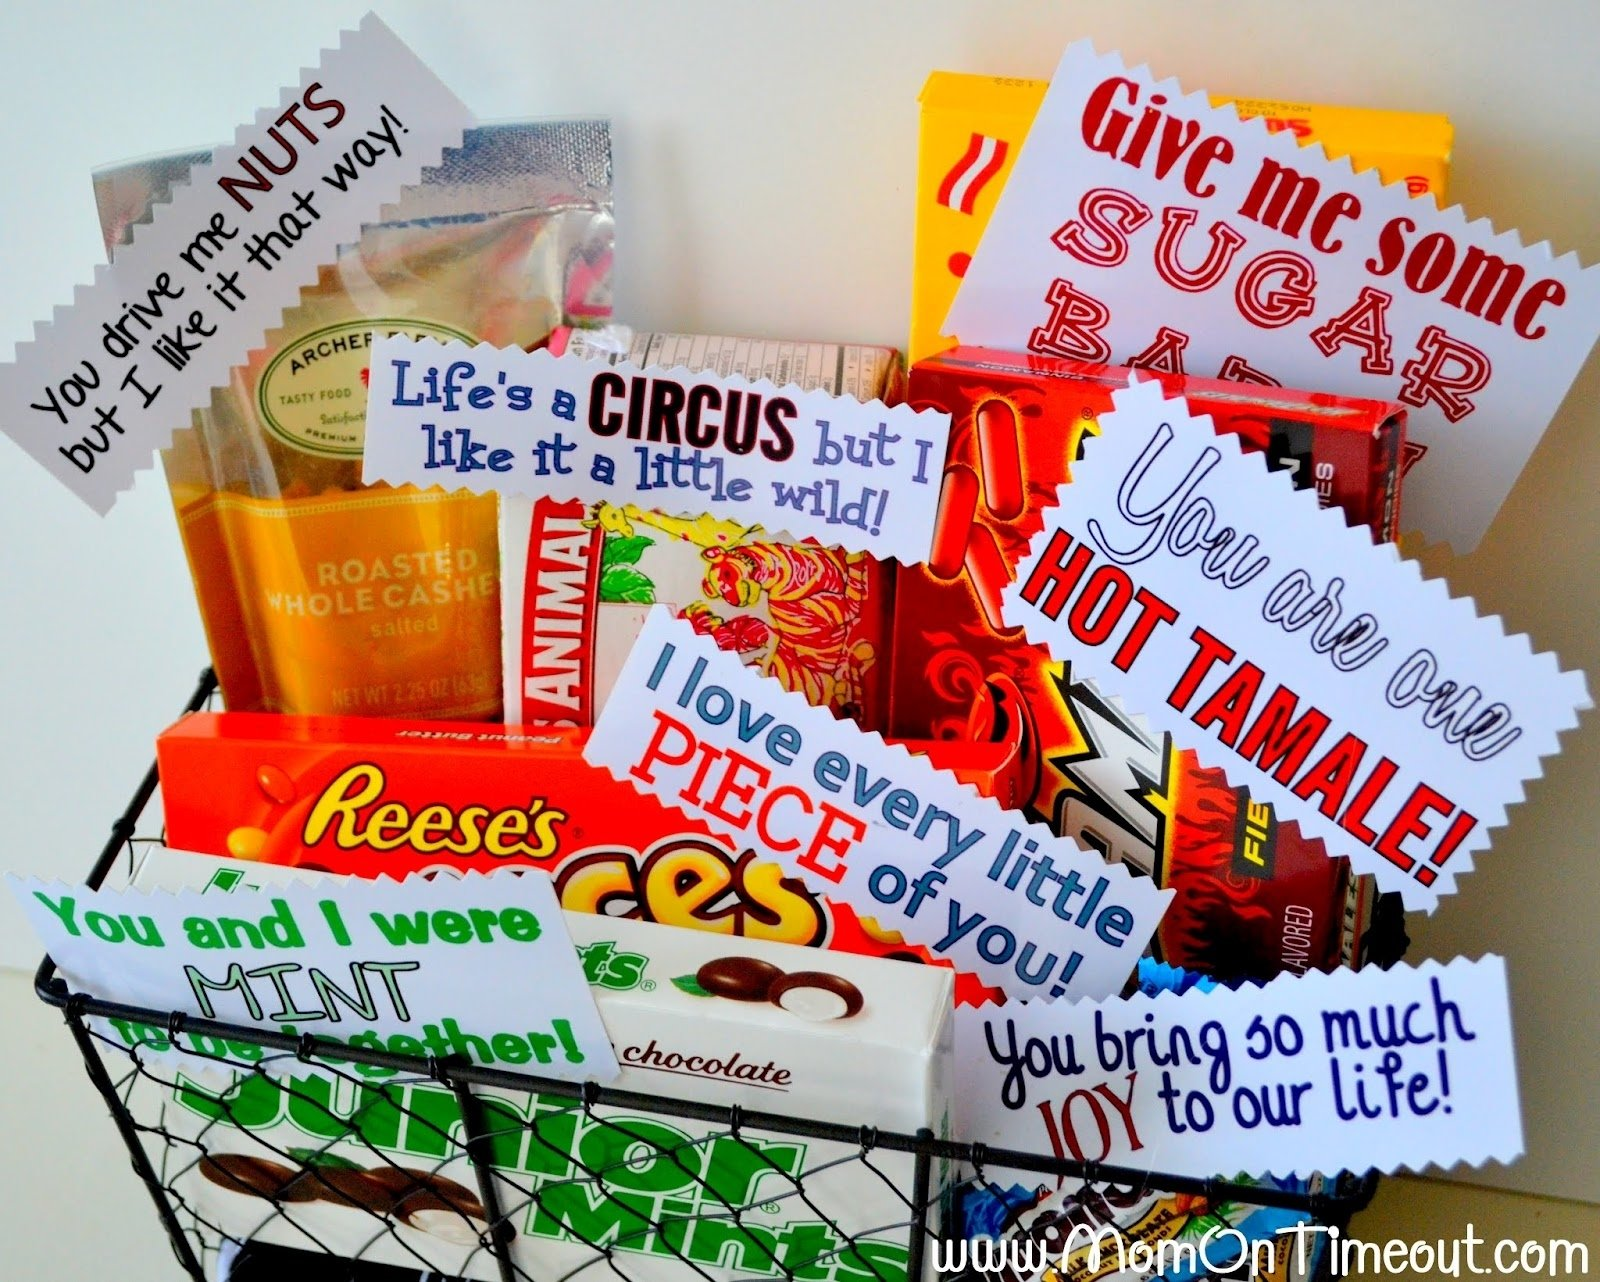 10 Lovely Sweetest Day Gift Ideas For Her gifts design ideas valentine days gift baskets for the boys and men 2020